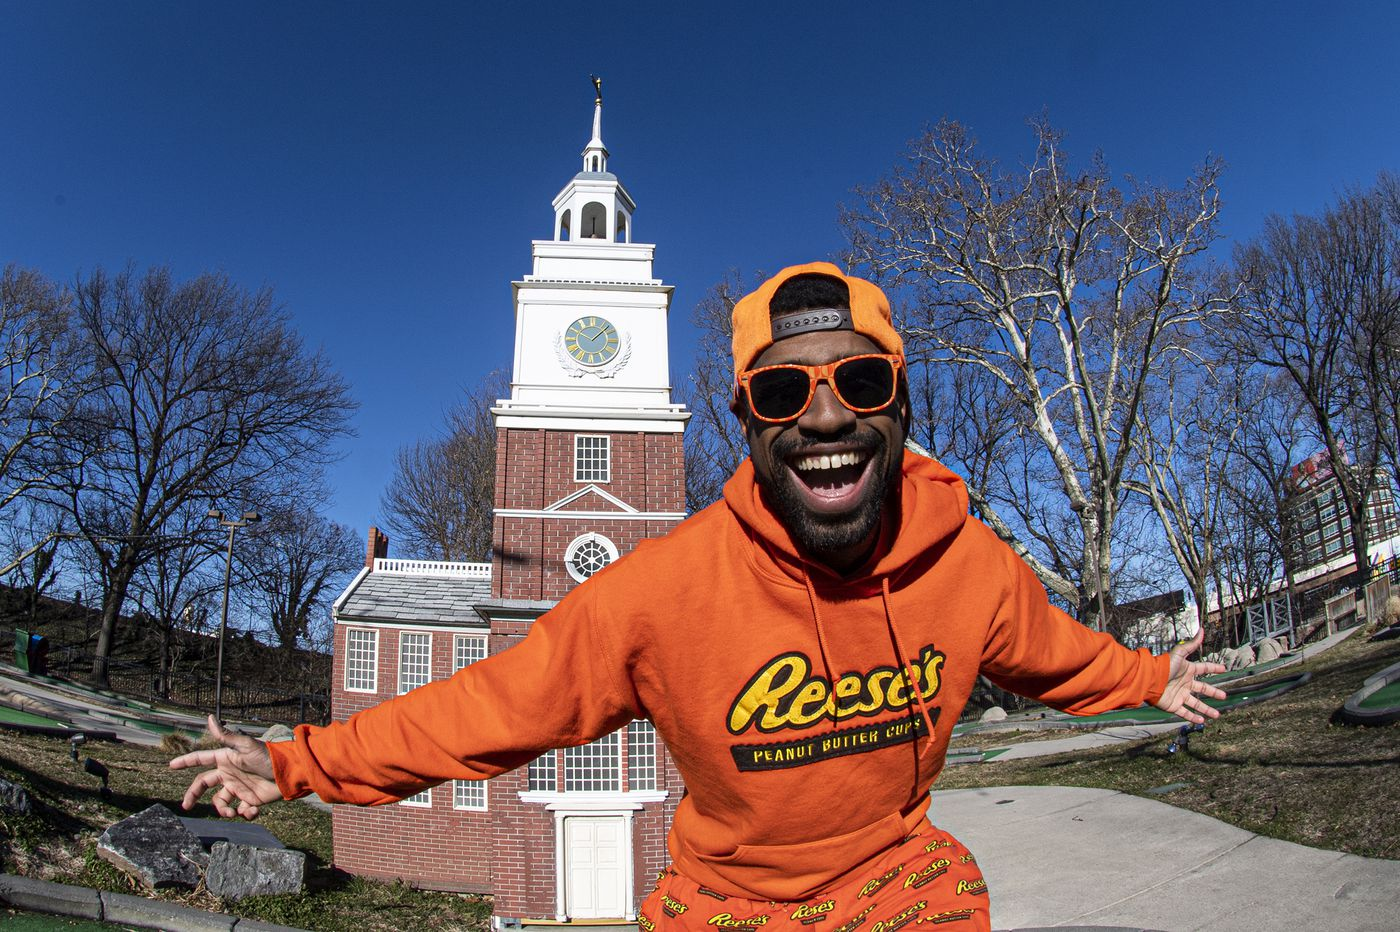 He was crowned the most outrageous fan of Reese's and Wawa, then he took it to the next level | We The People